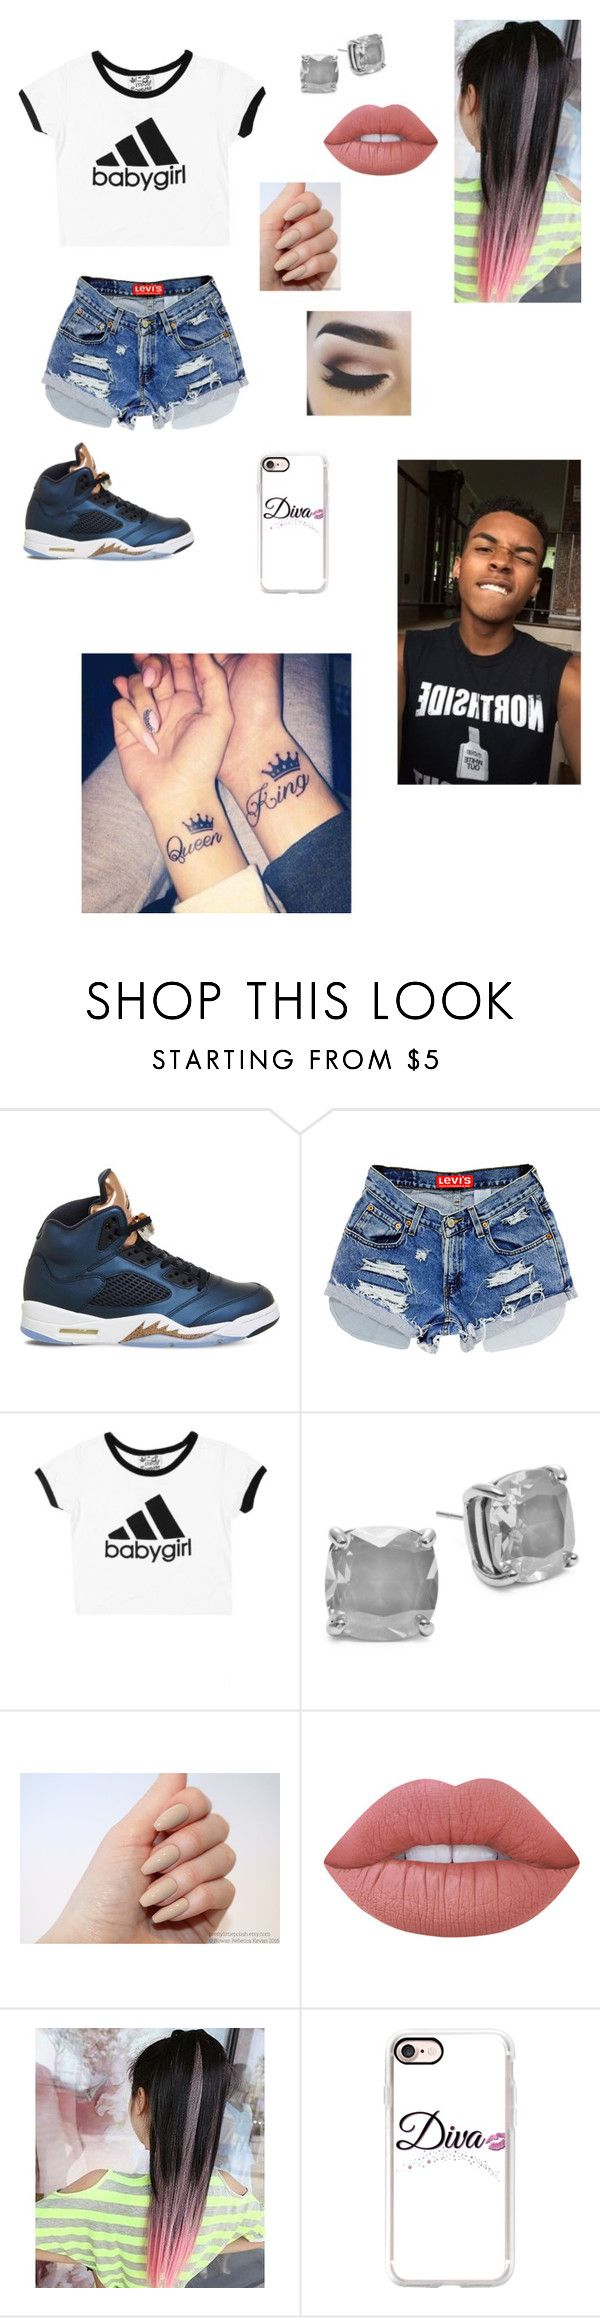 """gettin tattoos wit my bae!!!"" by we-be-slayin ❤ liked on Polyvore featuring NIKE, Kate Spade, Lime Crime and Casetify"